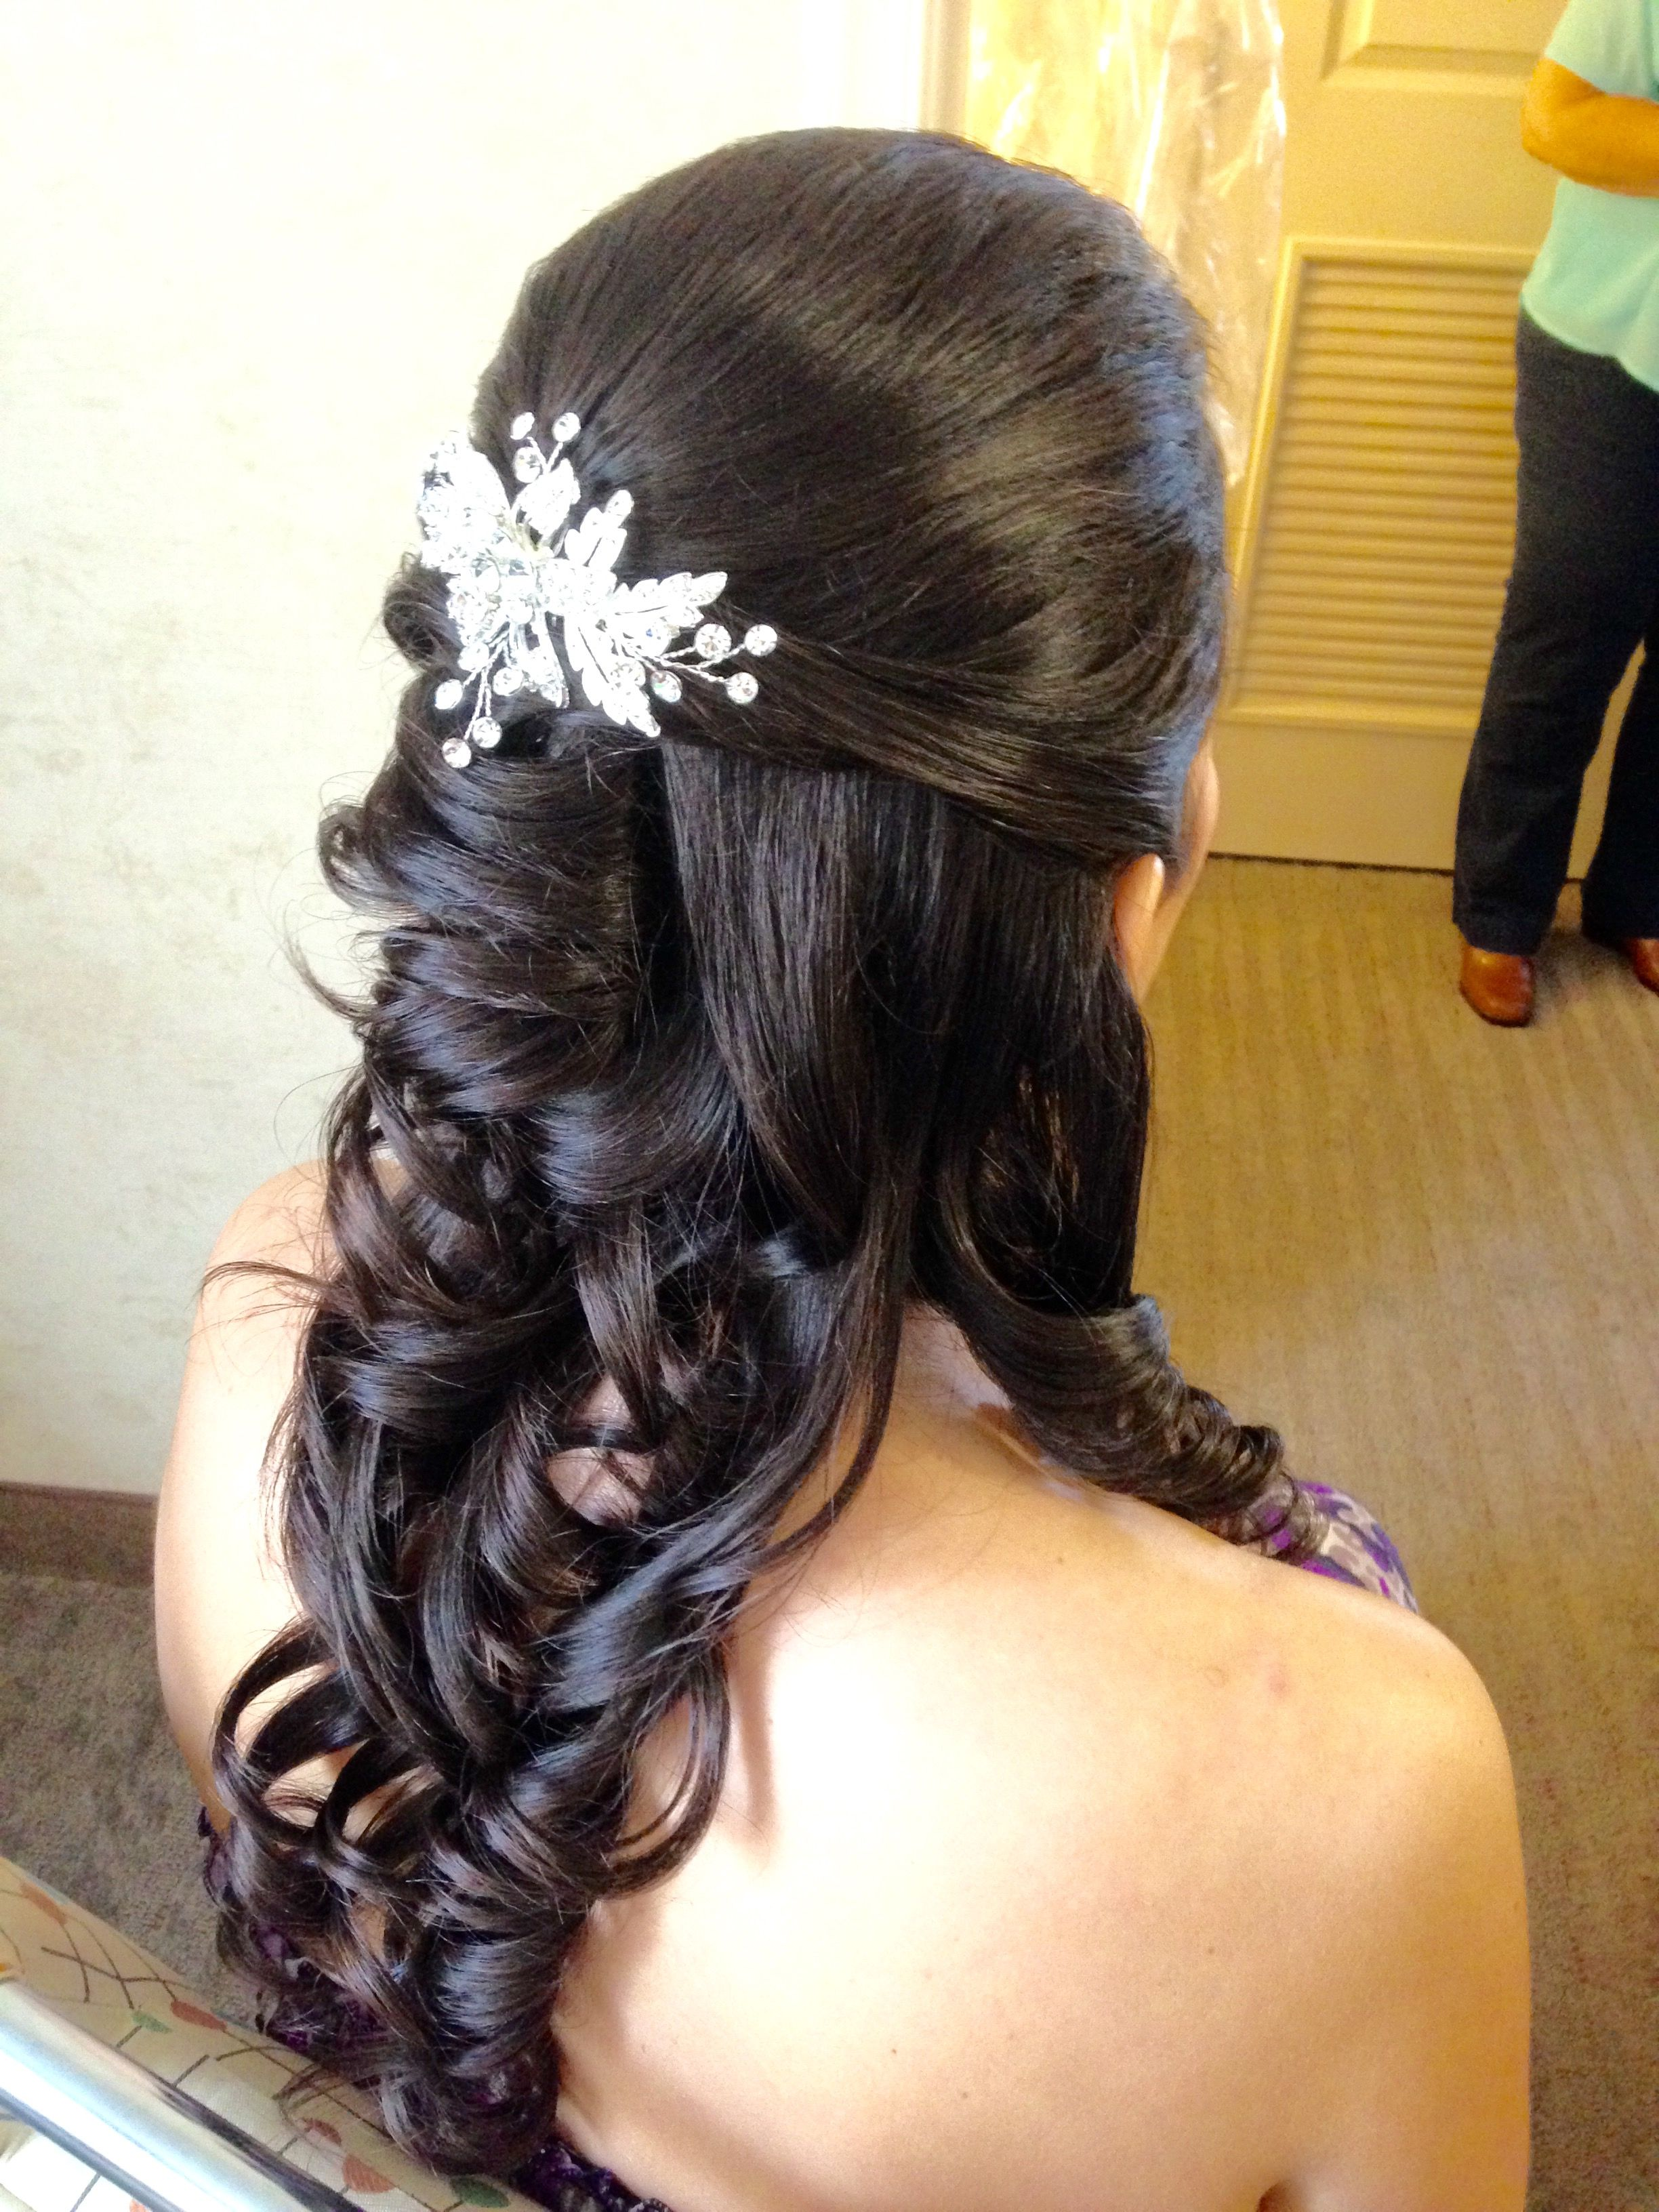 Stunning Wedding Hairstyles By Joanne Jostyles479aol